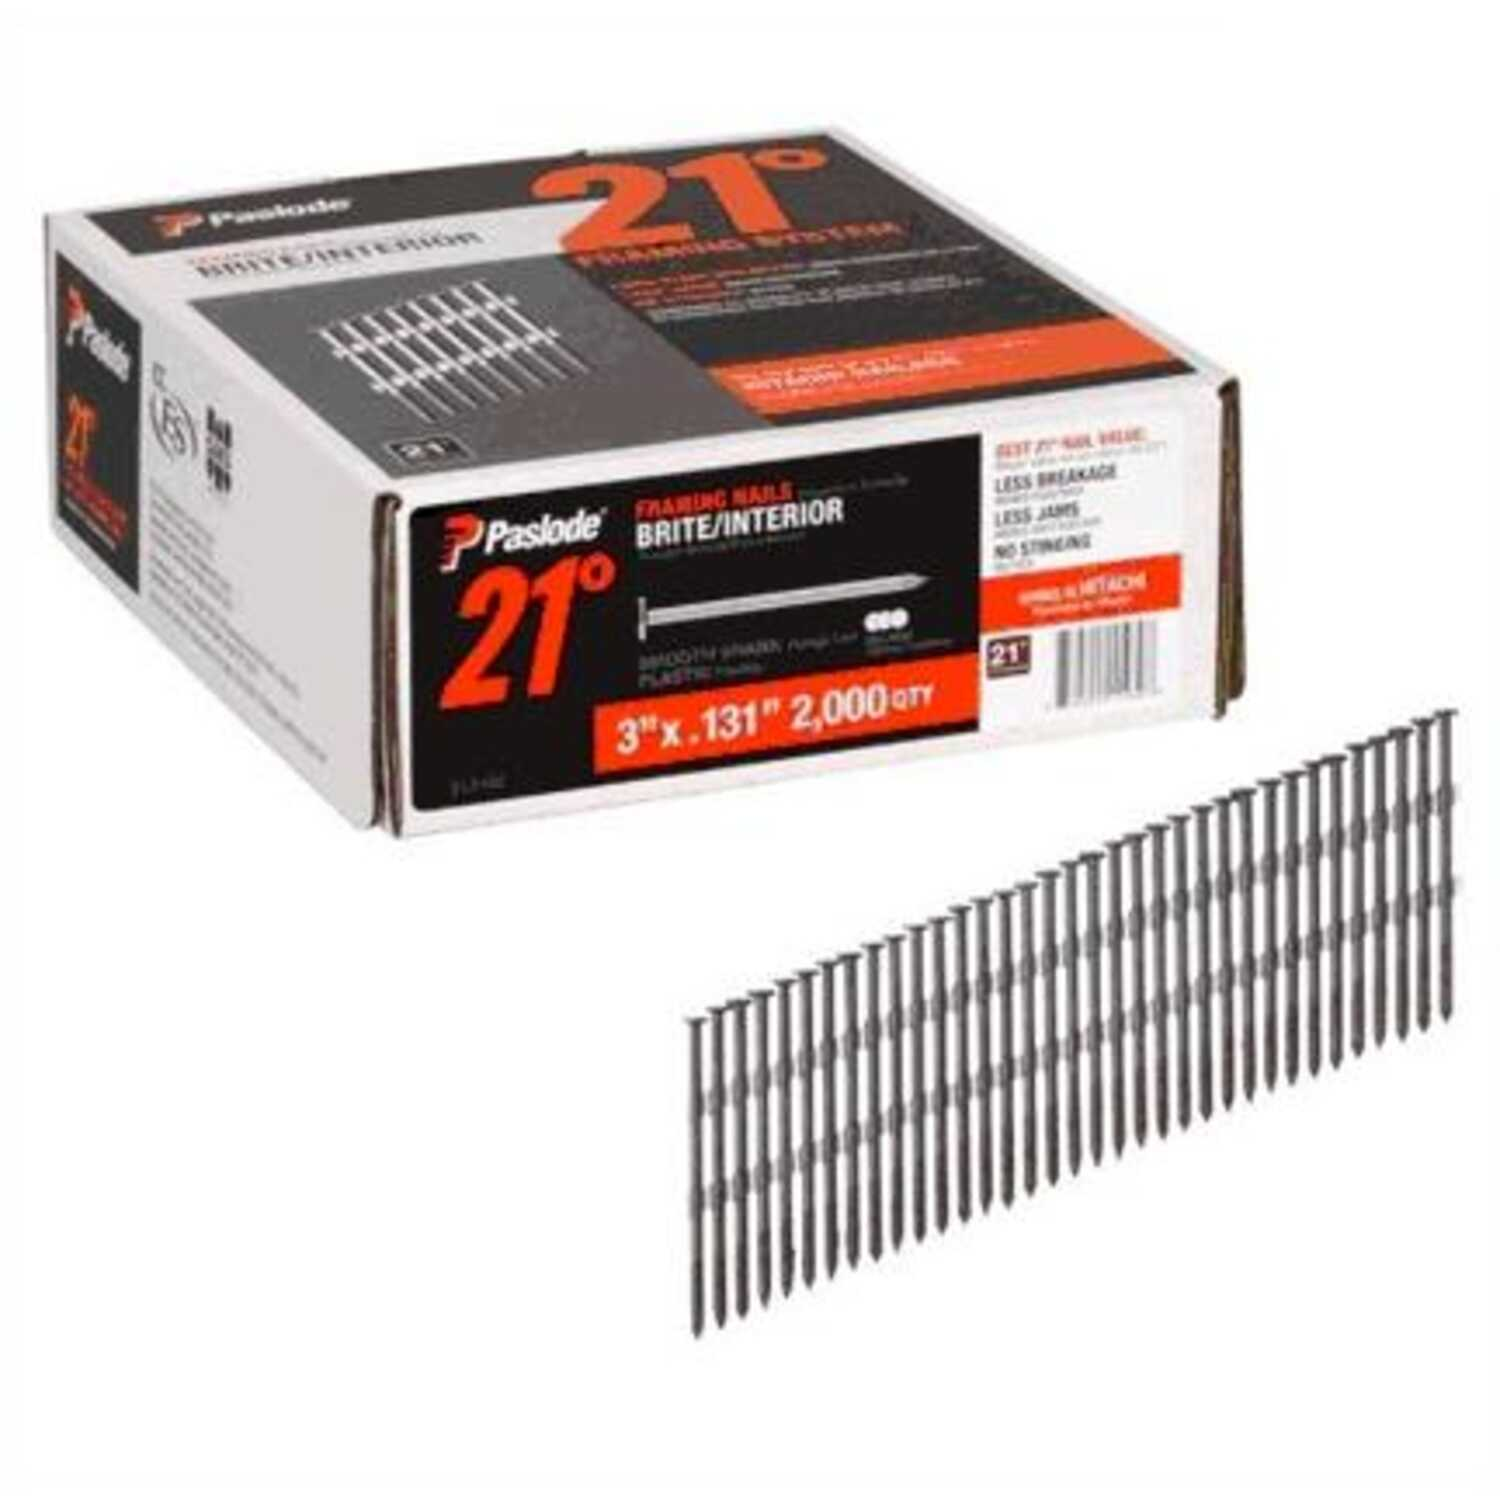 Paslode  21 deg. 16 Ga. Smooth Shank  Angled Strip  Framing Nails  3 in. L x 0.131 in. Dia. 2,000 pk